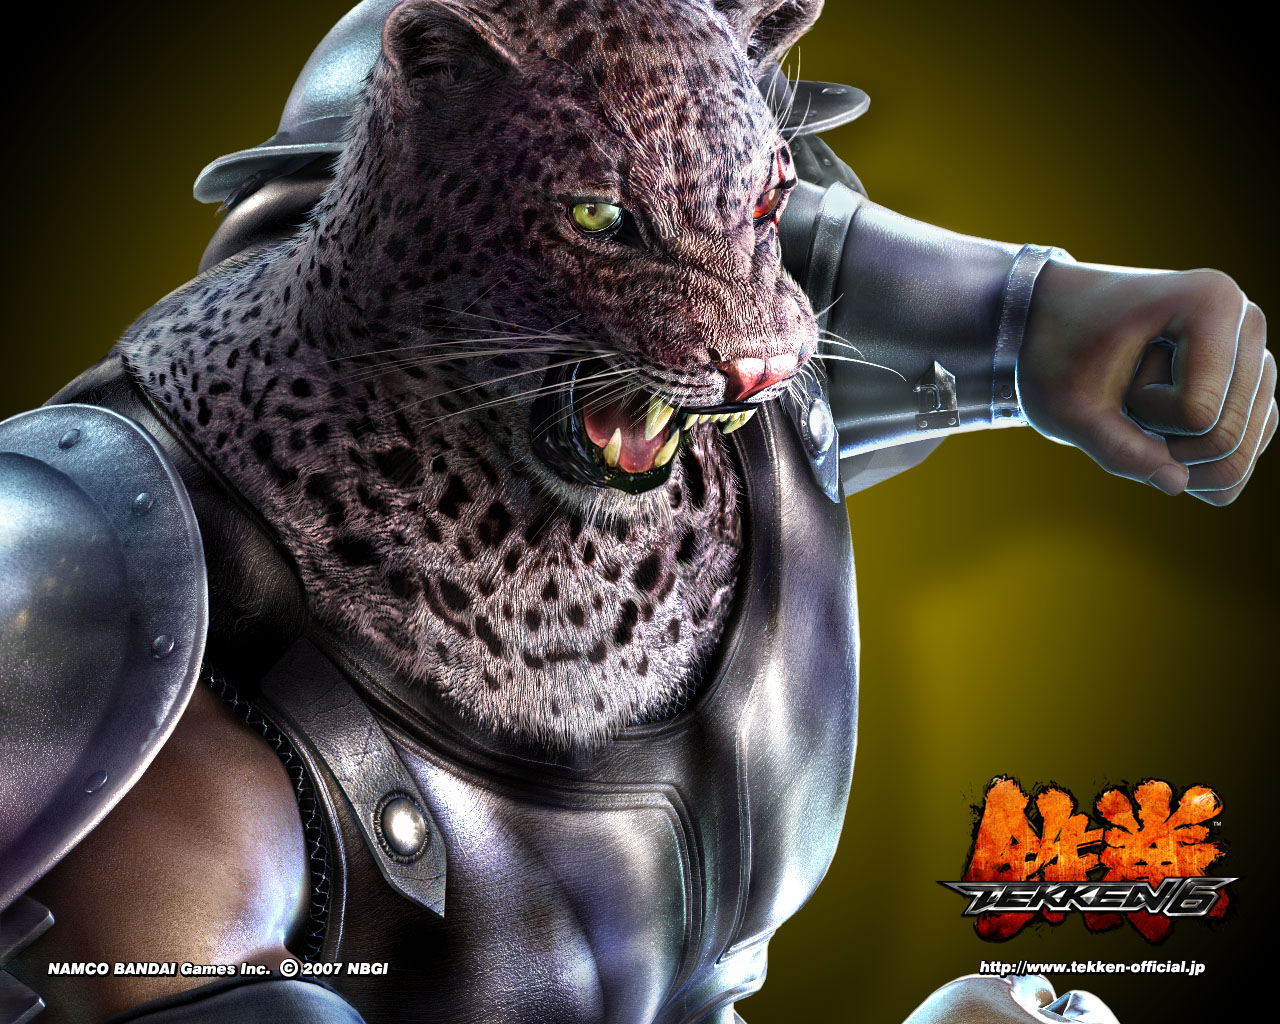 Armor King Tekken 6 542.59 Kb